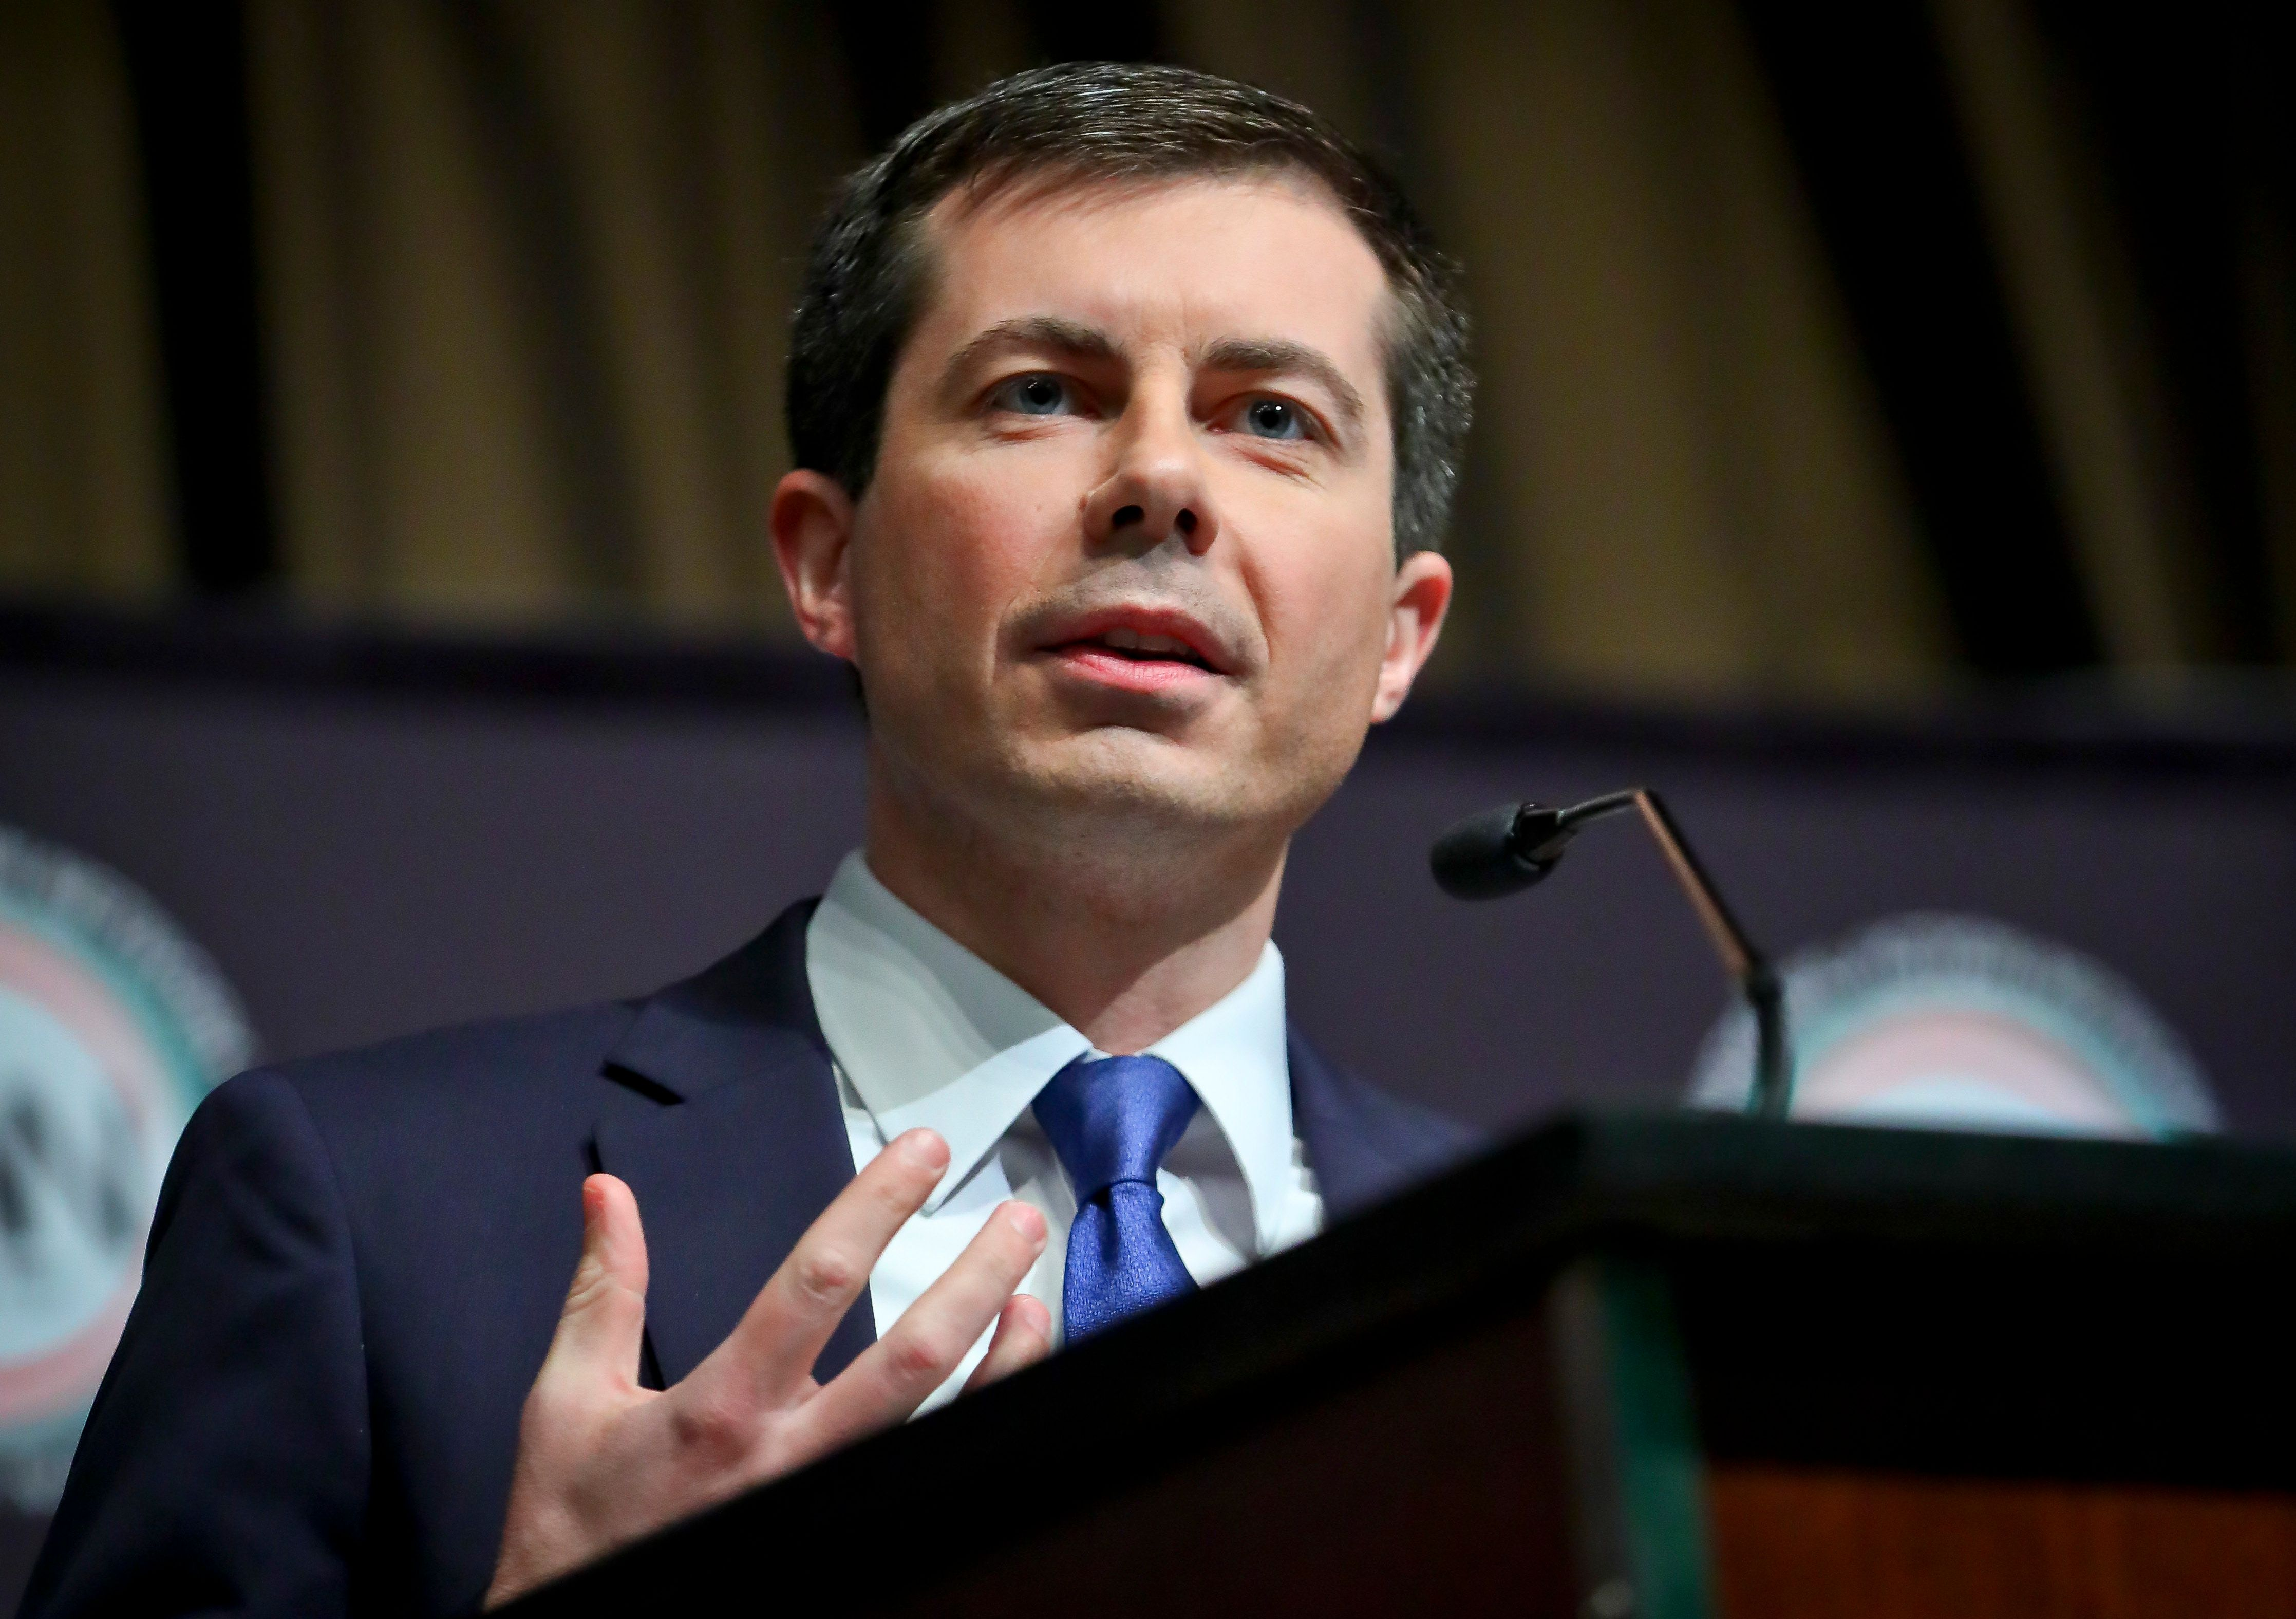 Democratic presidential candidate Pete Buttigieg, South Bend, Ind. mayor, address the National Action Network (NAN) convention, Thursday April 4, 2019, in New York. (AP Photo/Bebeto Matthews)